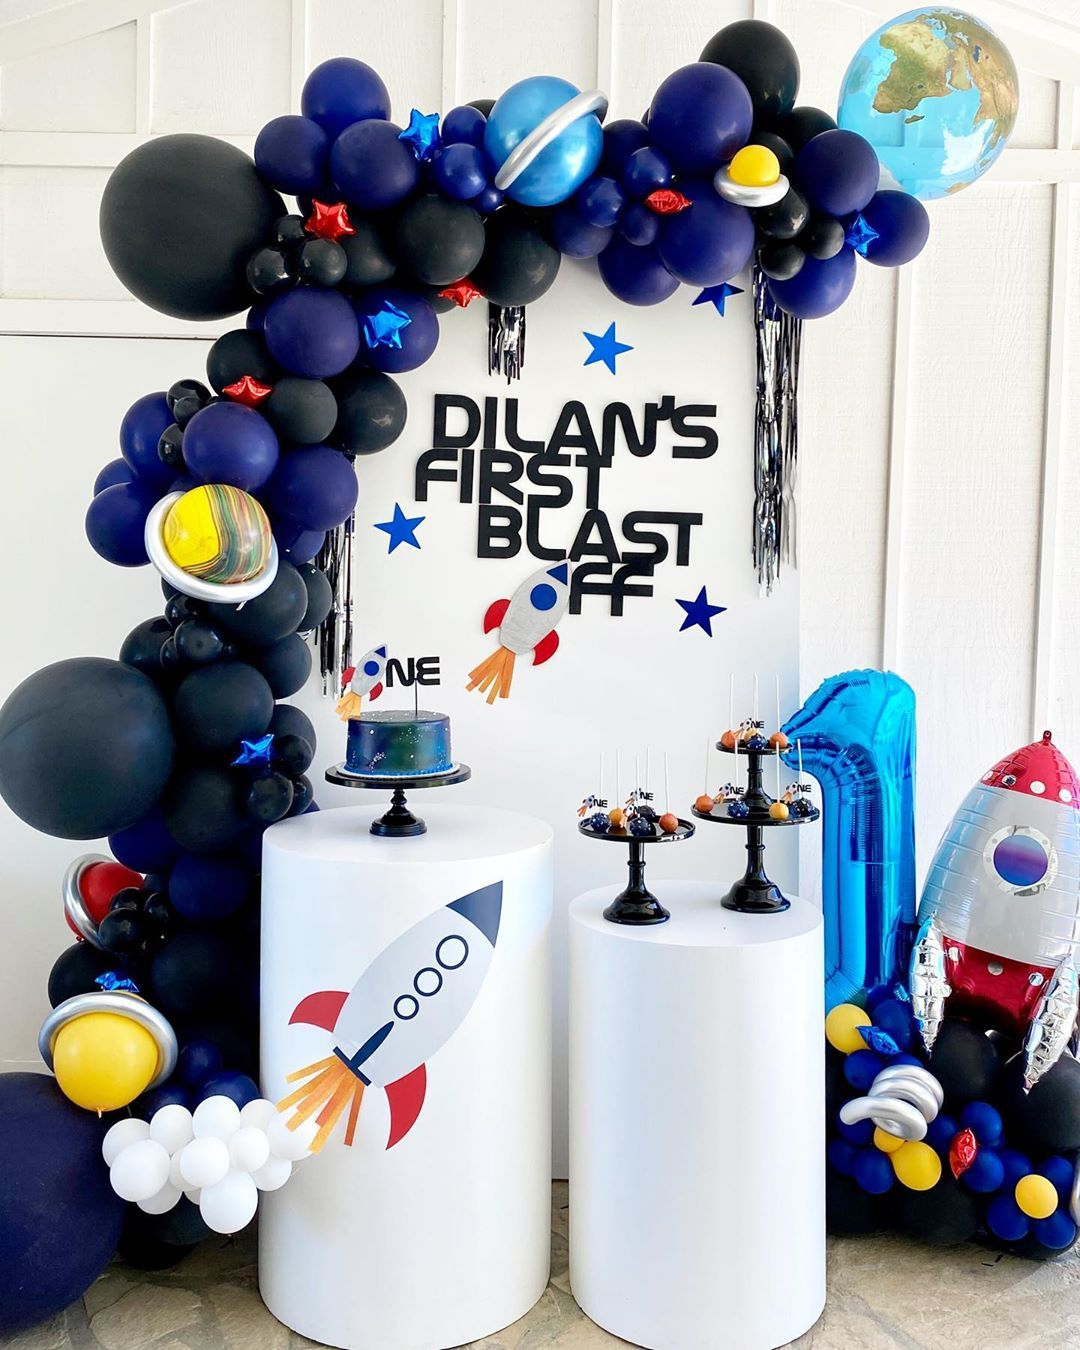 20 1st Birthday Party Themes For Baby Boy 1st Birthday Party Themes First Birthday Decorations Boy Kids Themed Birthday Parties